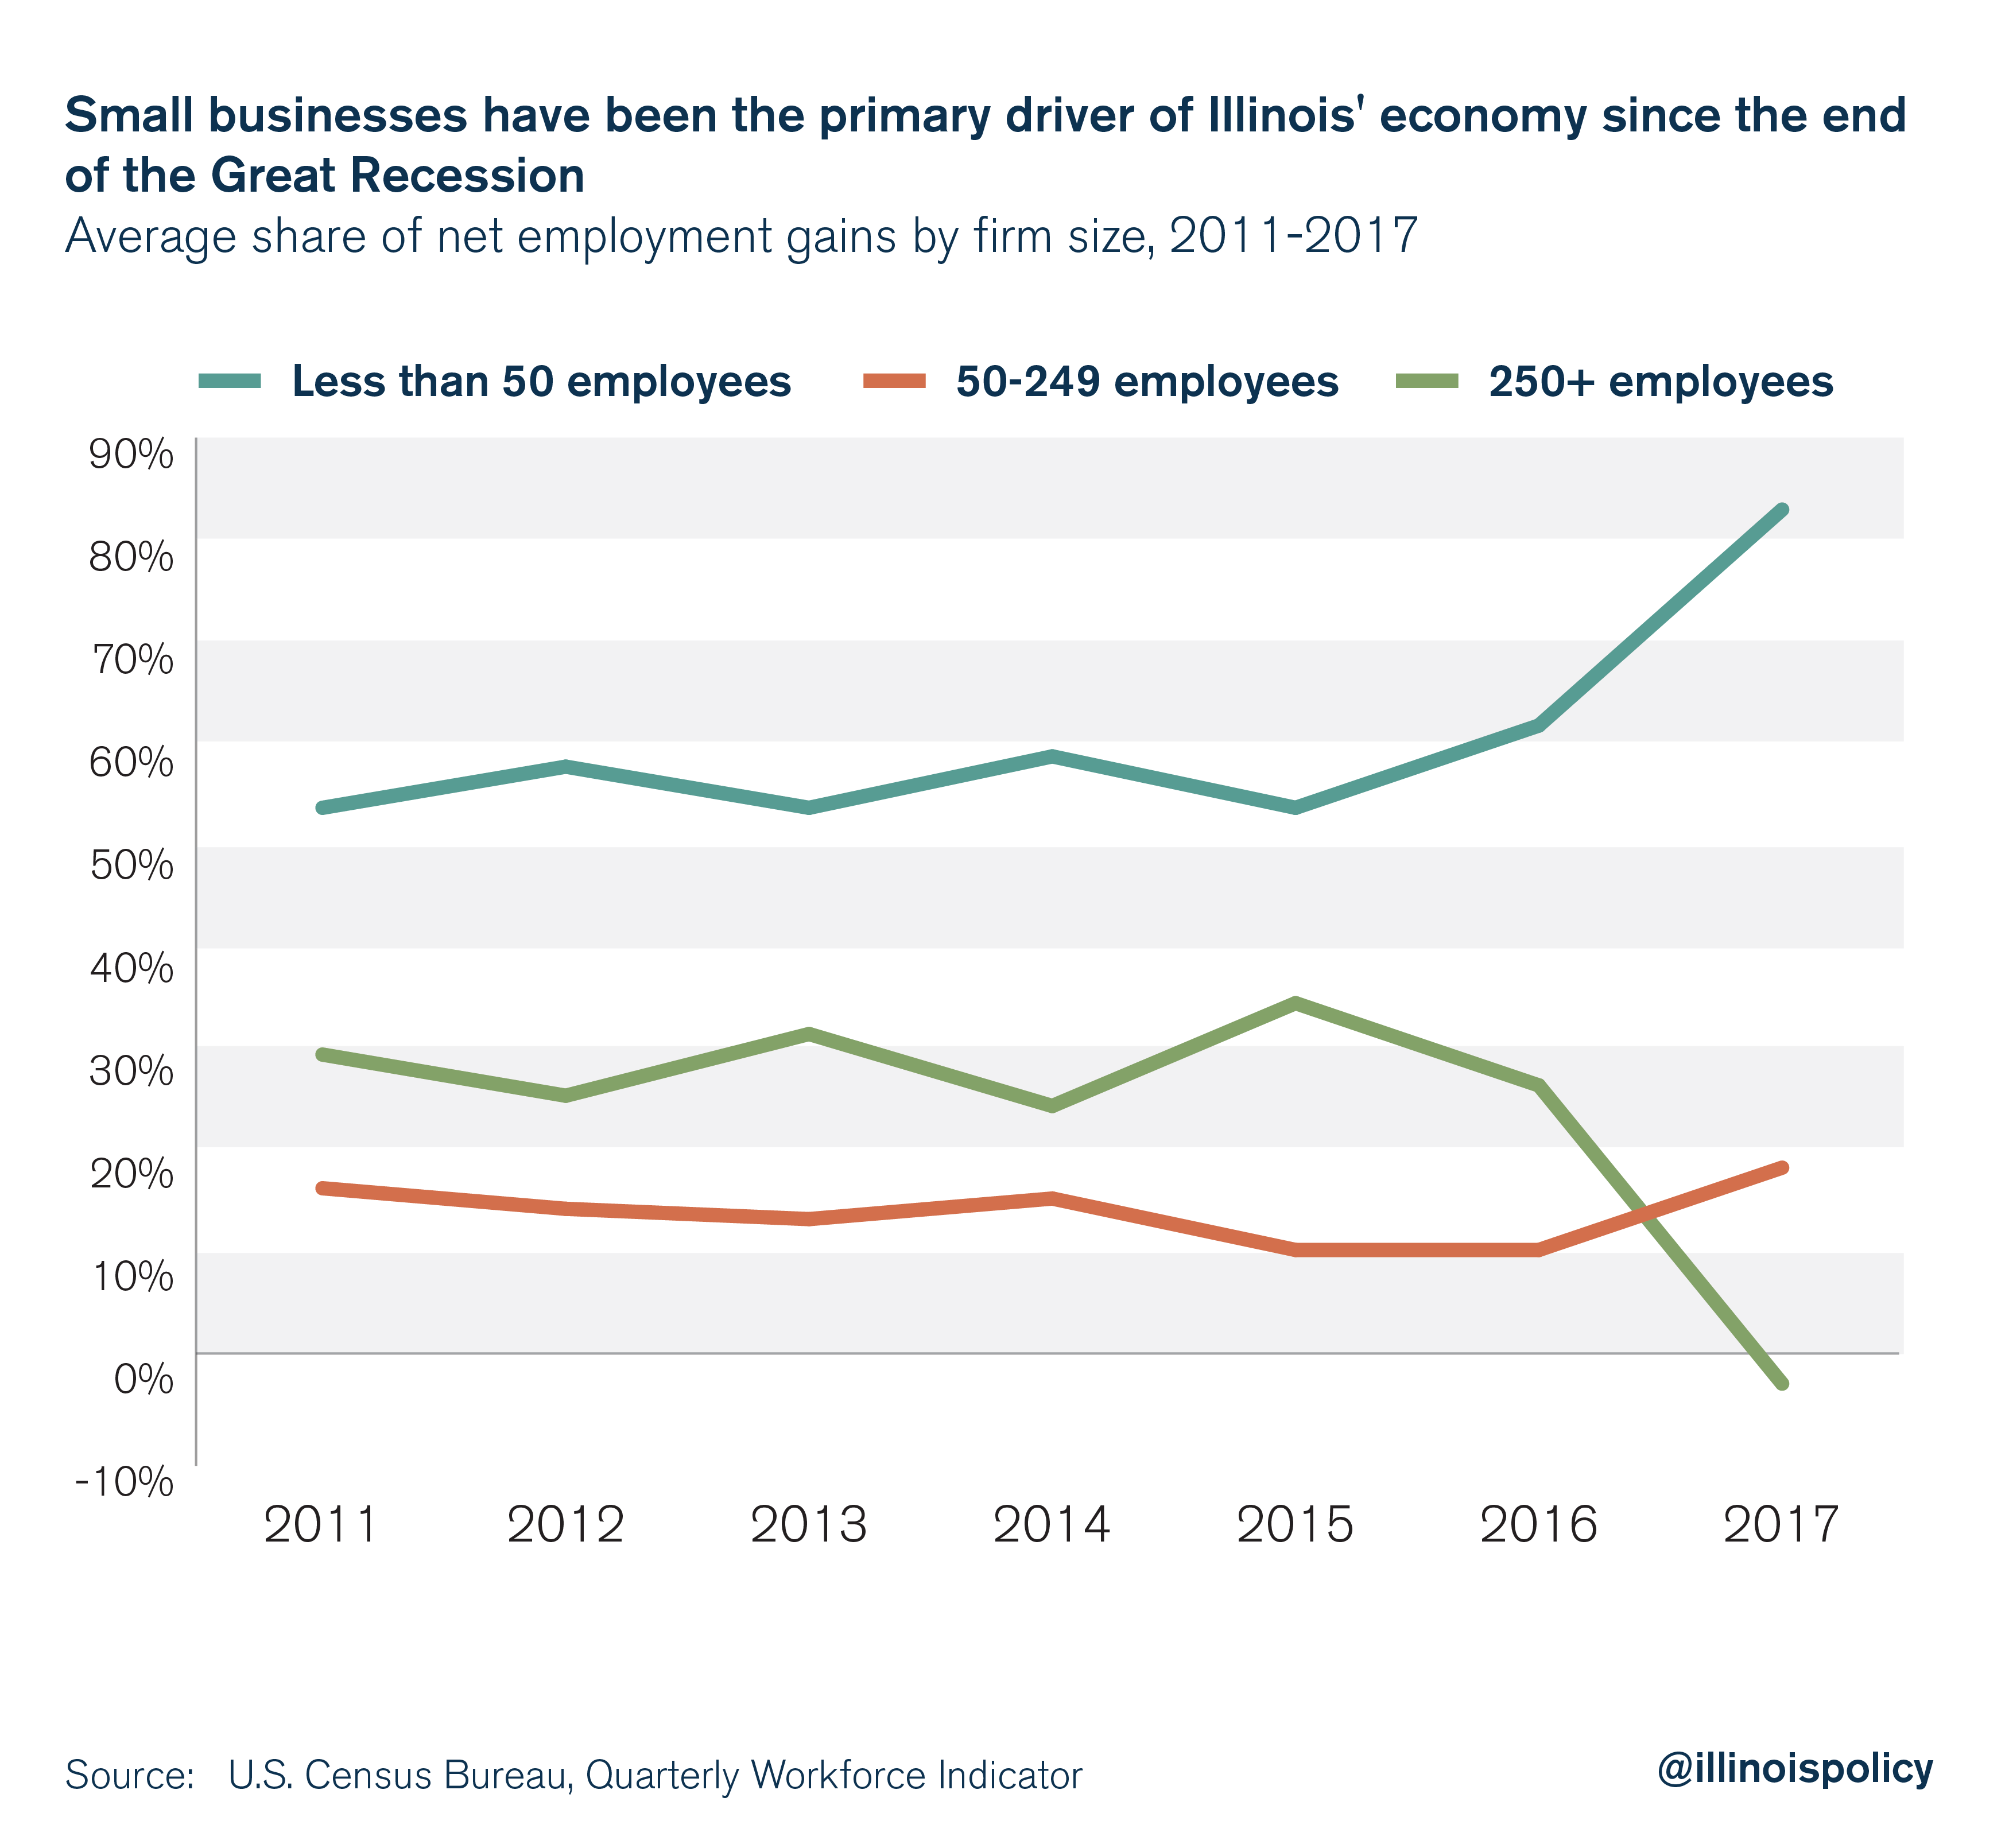 Small businesses have been the primary driver of Illinois' economy since the end of the great recession